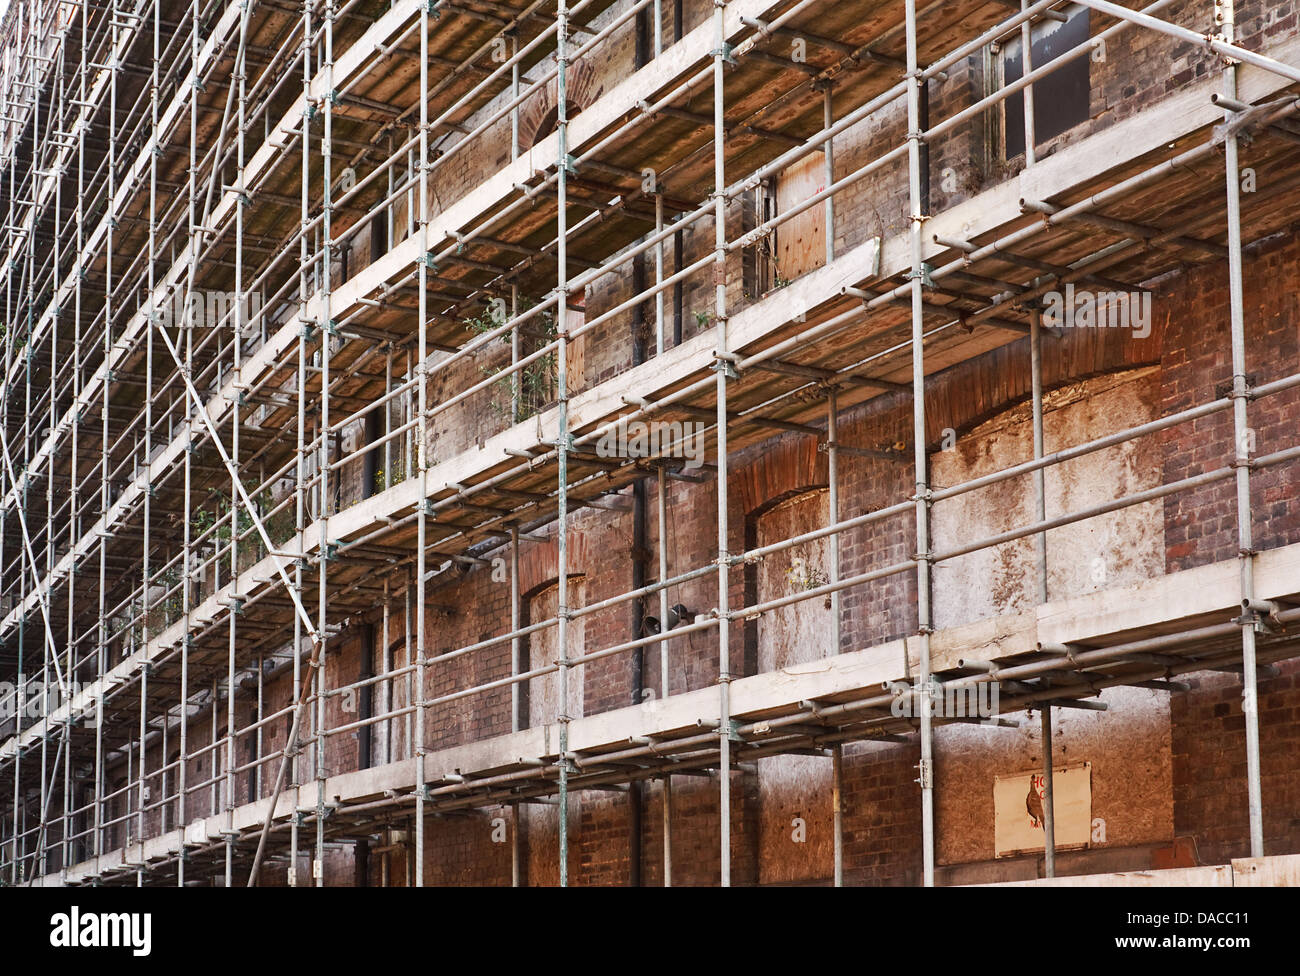 Scaffolding supporting an old derelict building - Stock Image